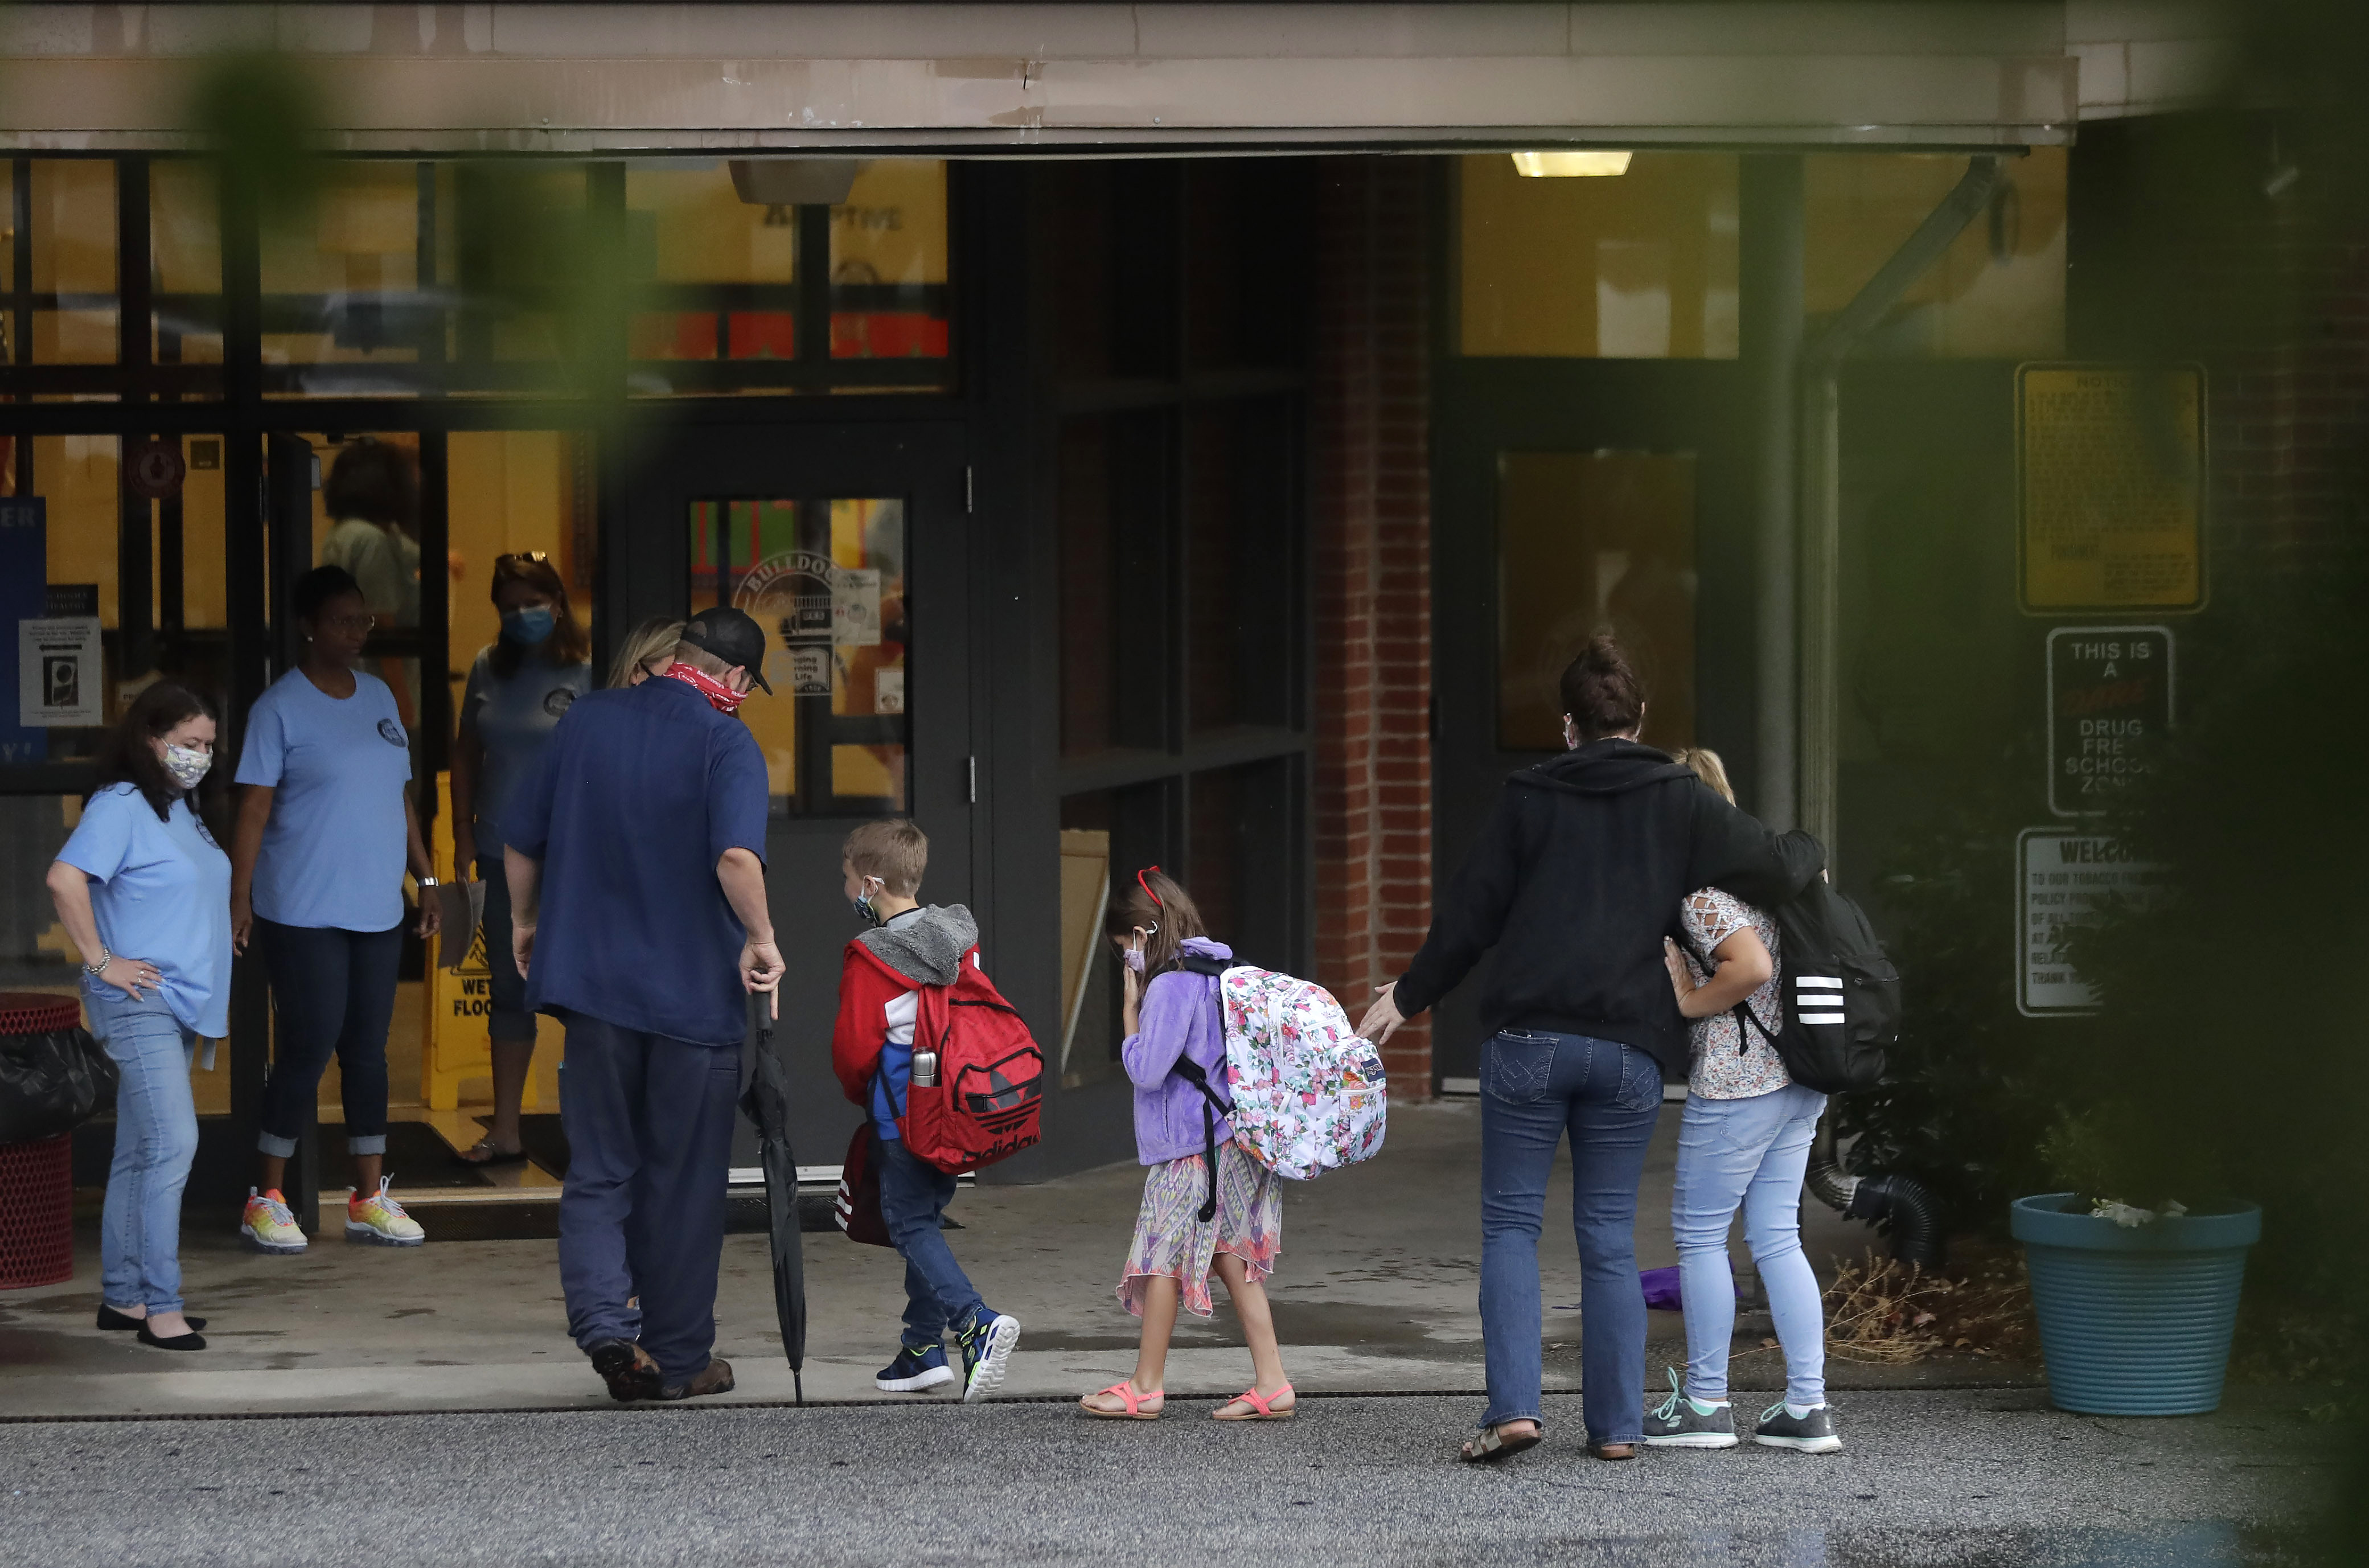 Students arrive to Dallas Elementary School for the first day of school amid the coronavirus outbreak on Aug. 3, 2020, in Dallas, Ga.